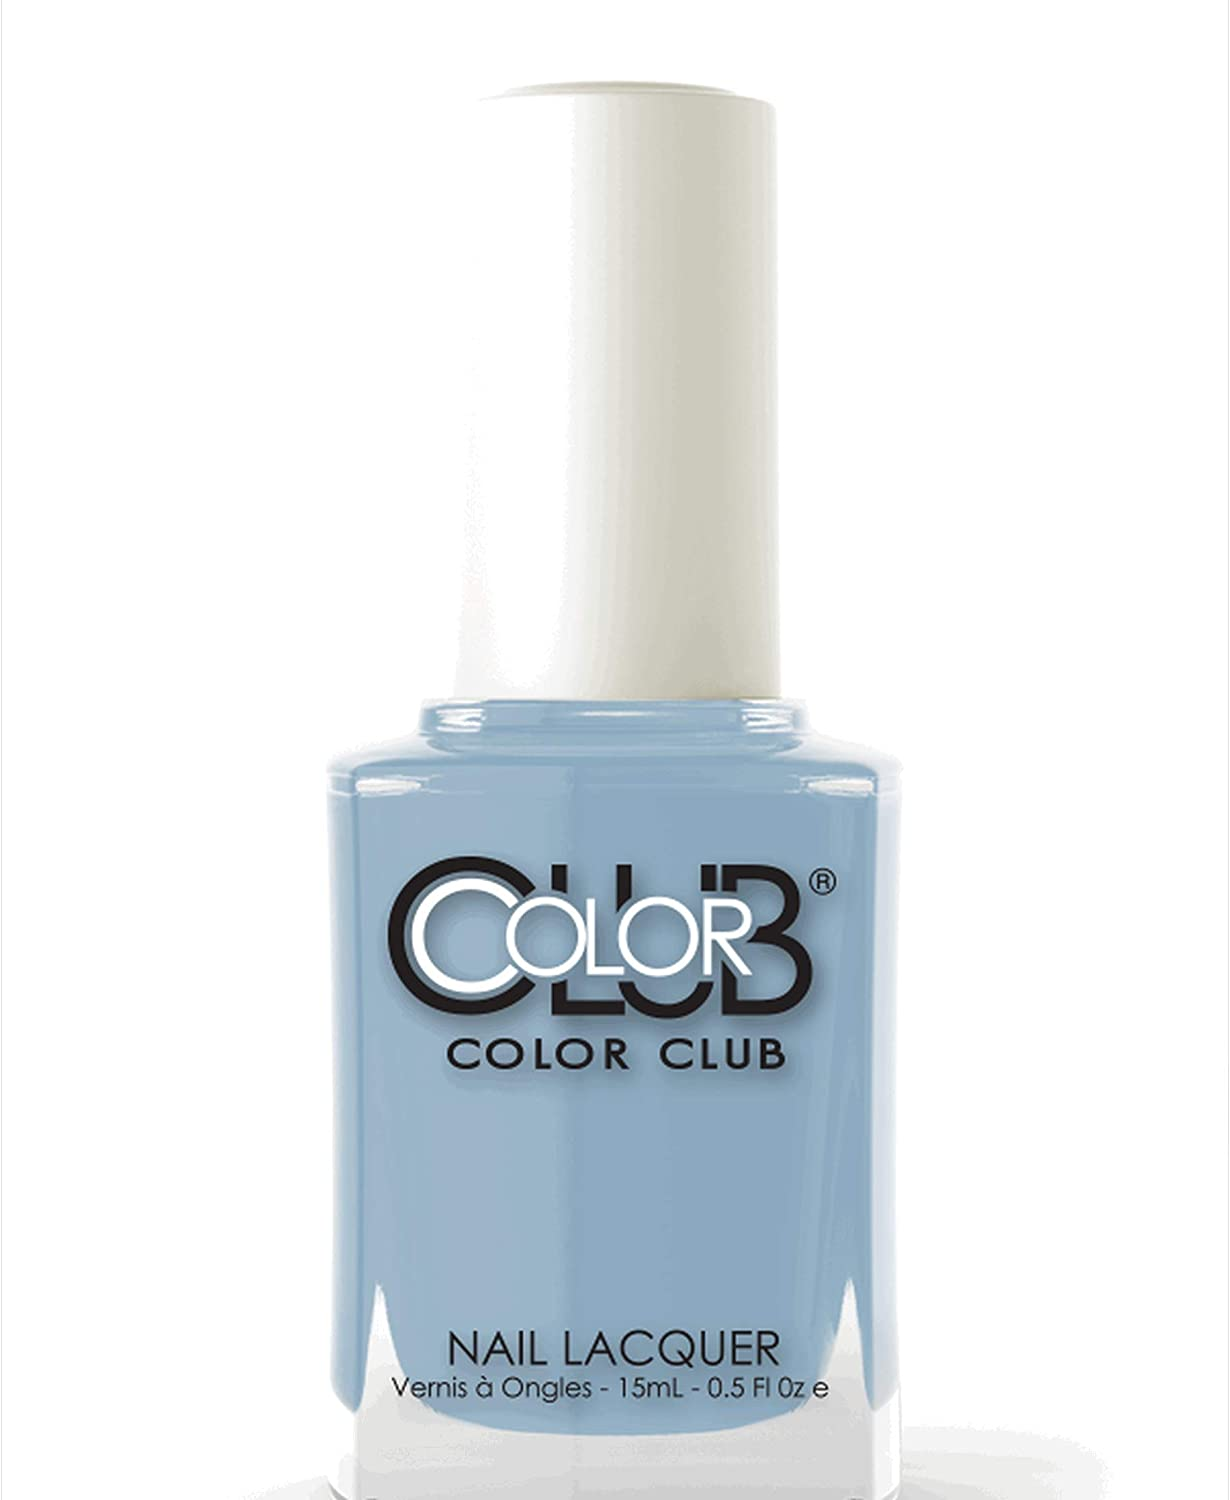 Color Club Nail Lacquer Feeling Under The Weather